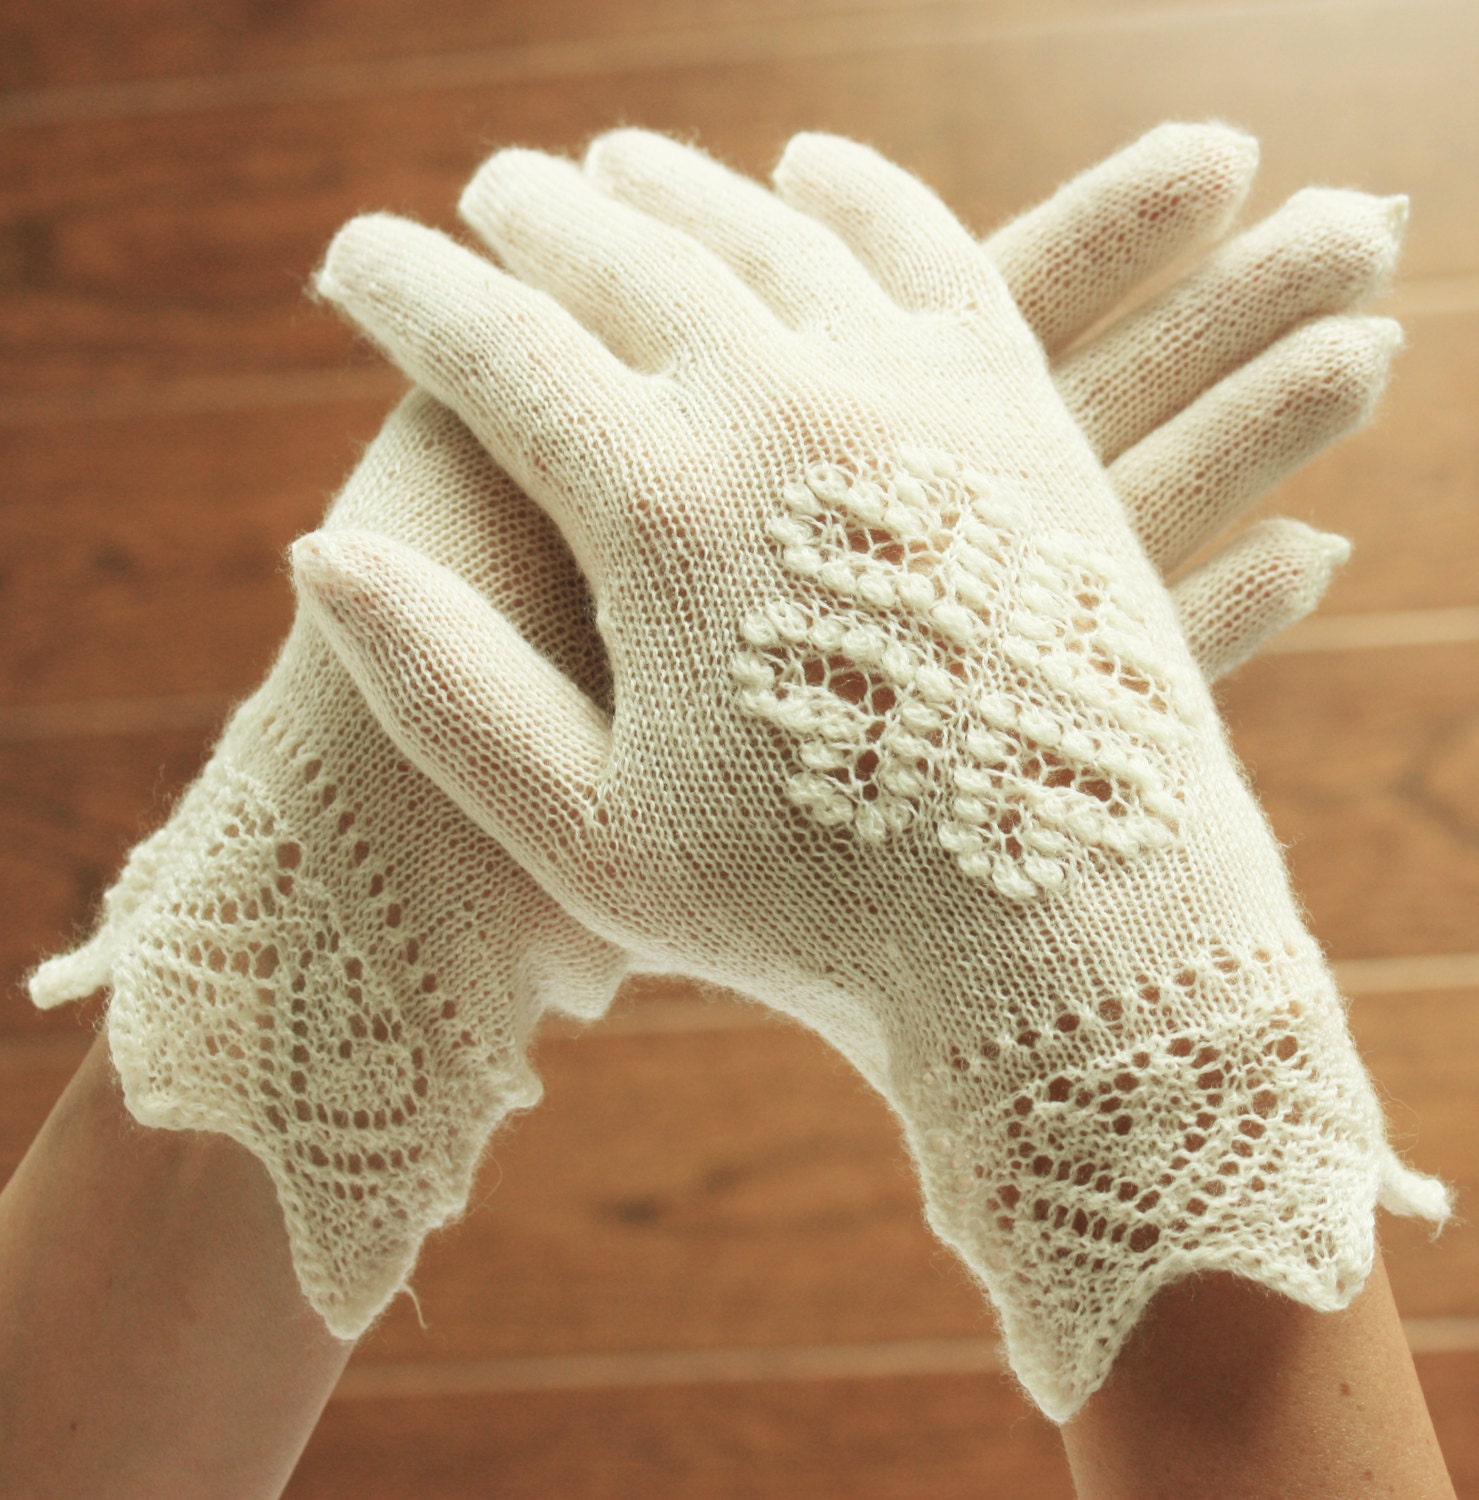 Lace Mittens Knitting Pattern : Hand-knitted gloves White Estonian Lace Bridal Gloves White